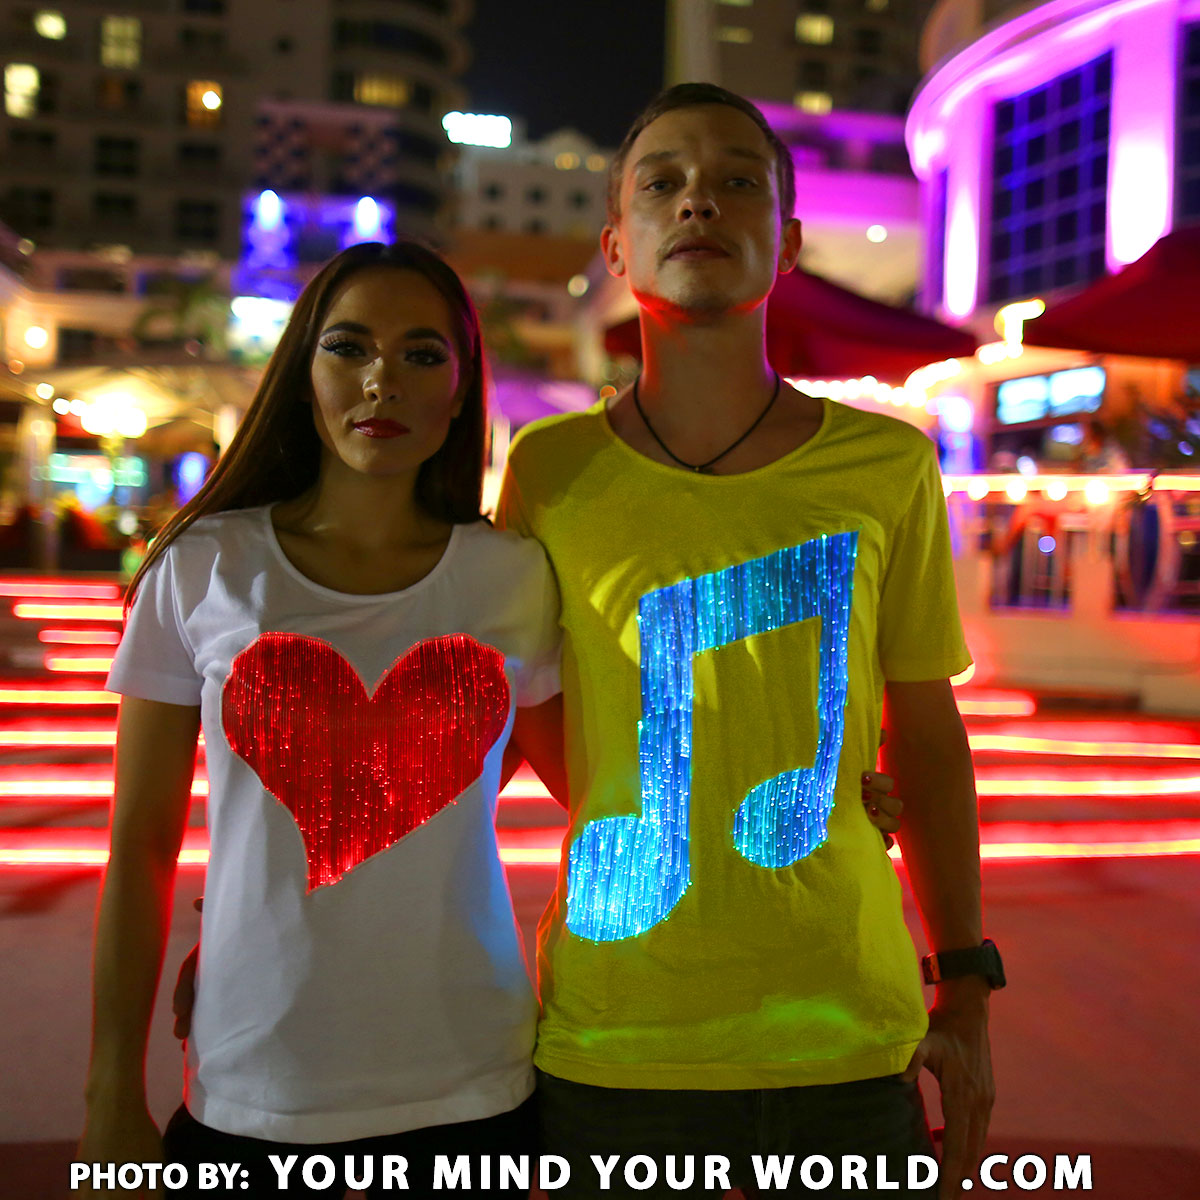 Fiber Optic Light Up And Glow In The Dark T Shirts For Sale